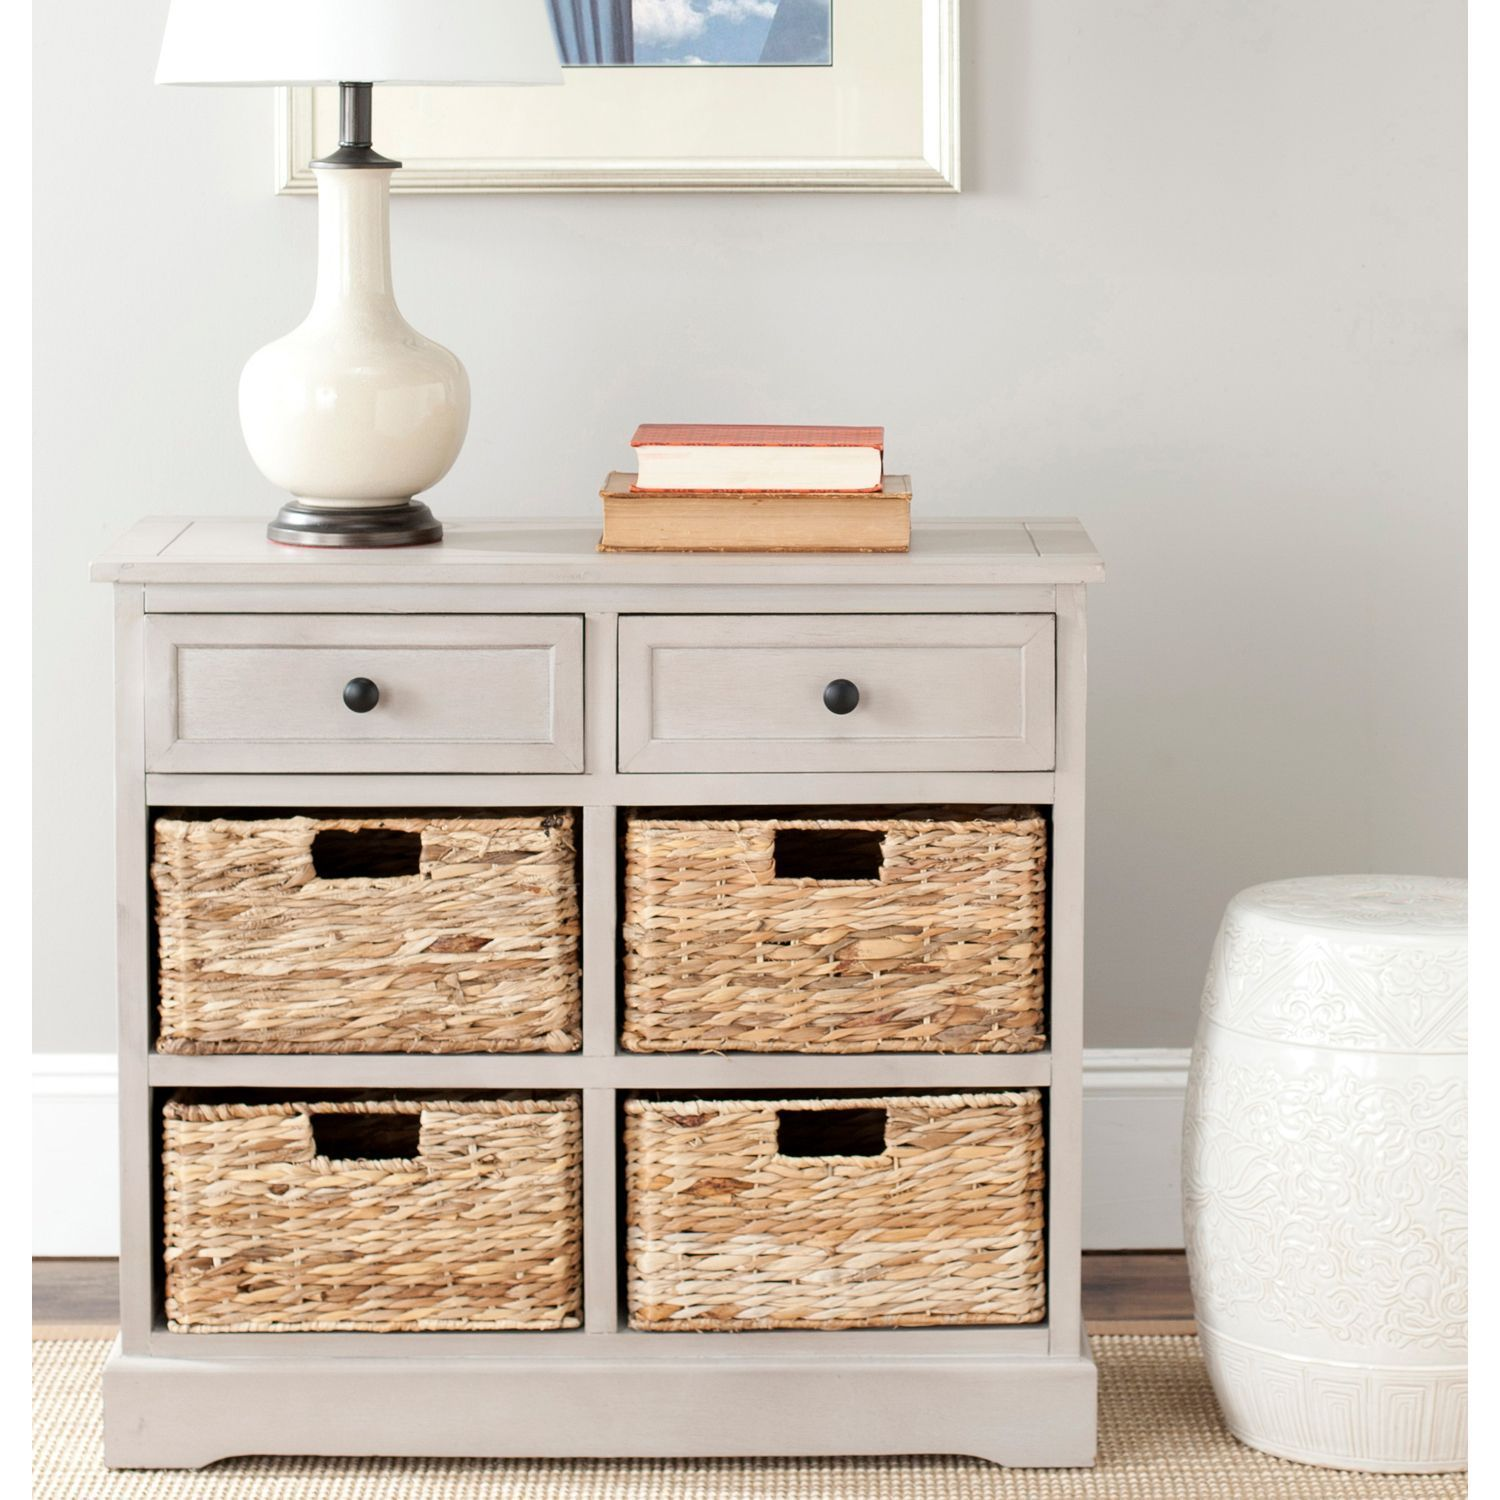 Ryan gray storage cabinet with wicker baskets pier imports